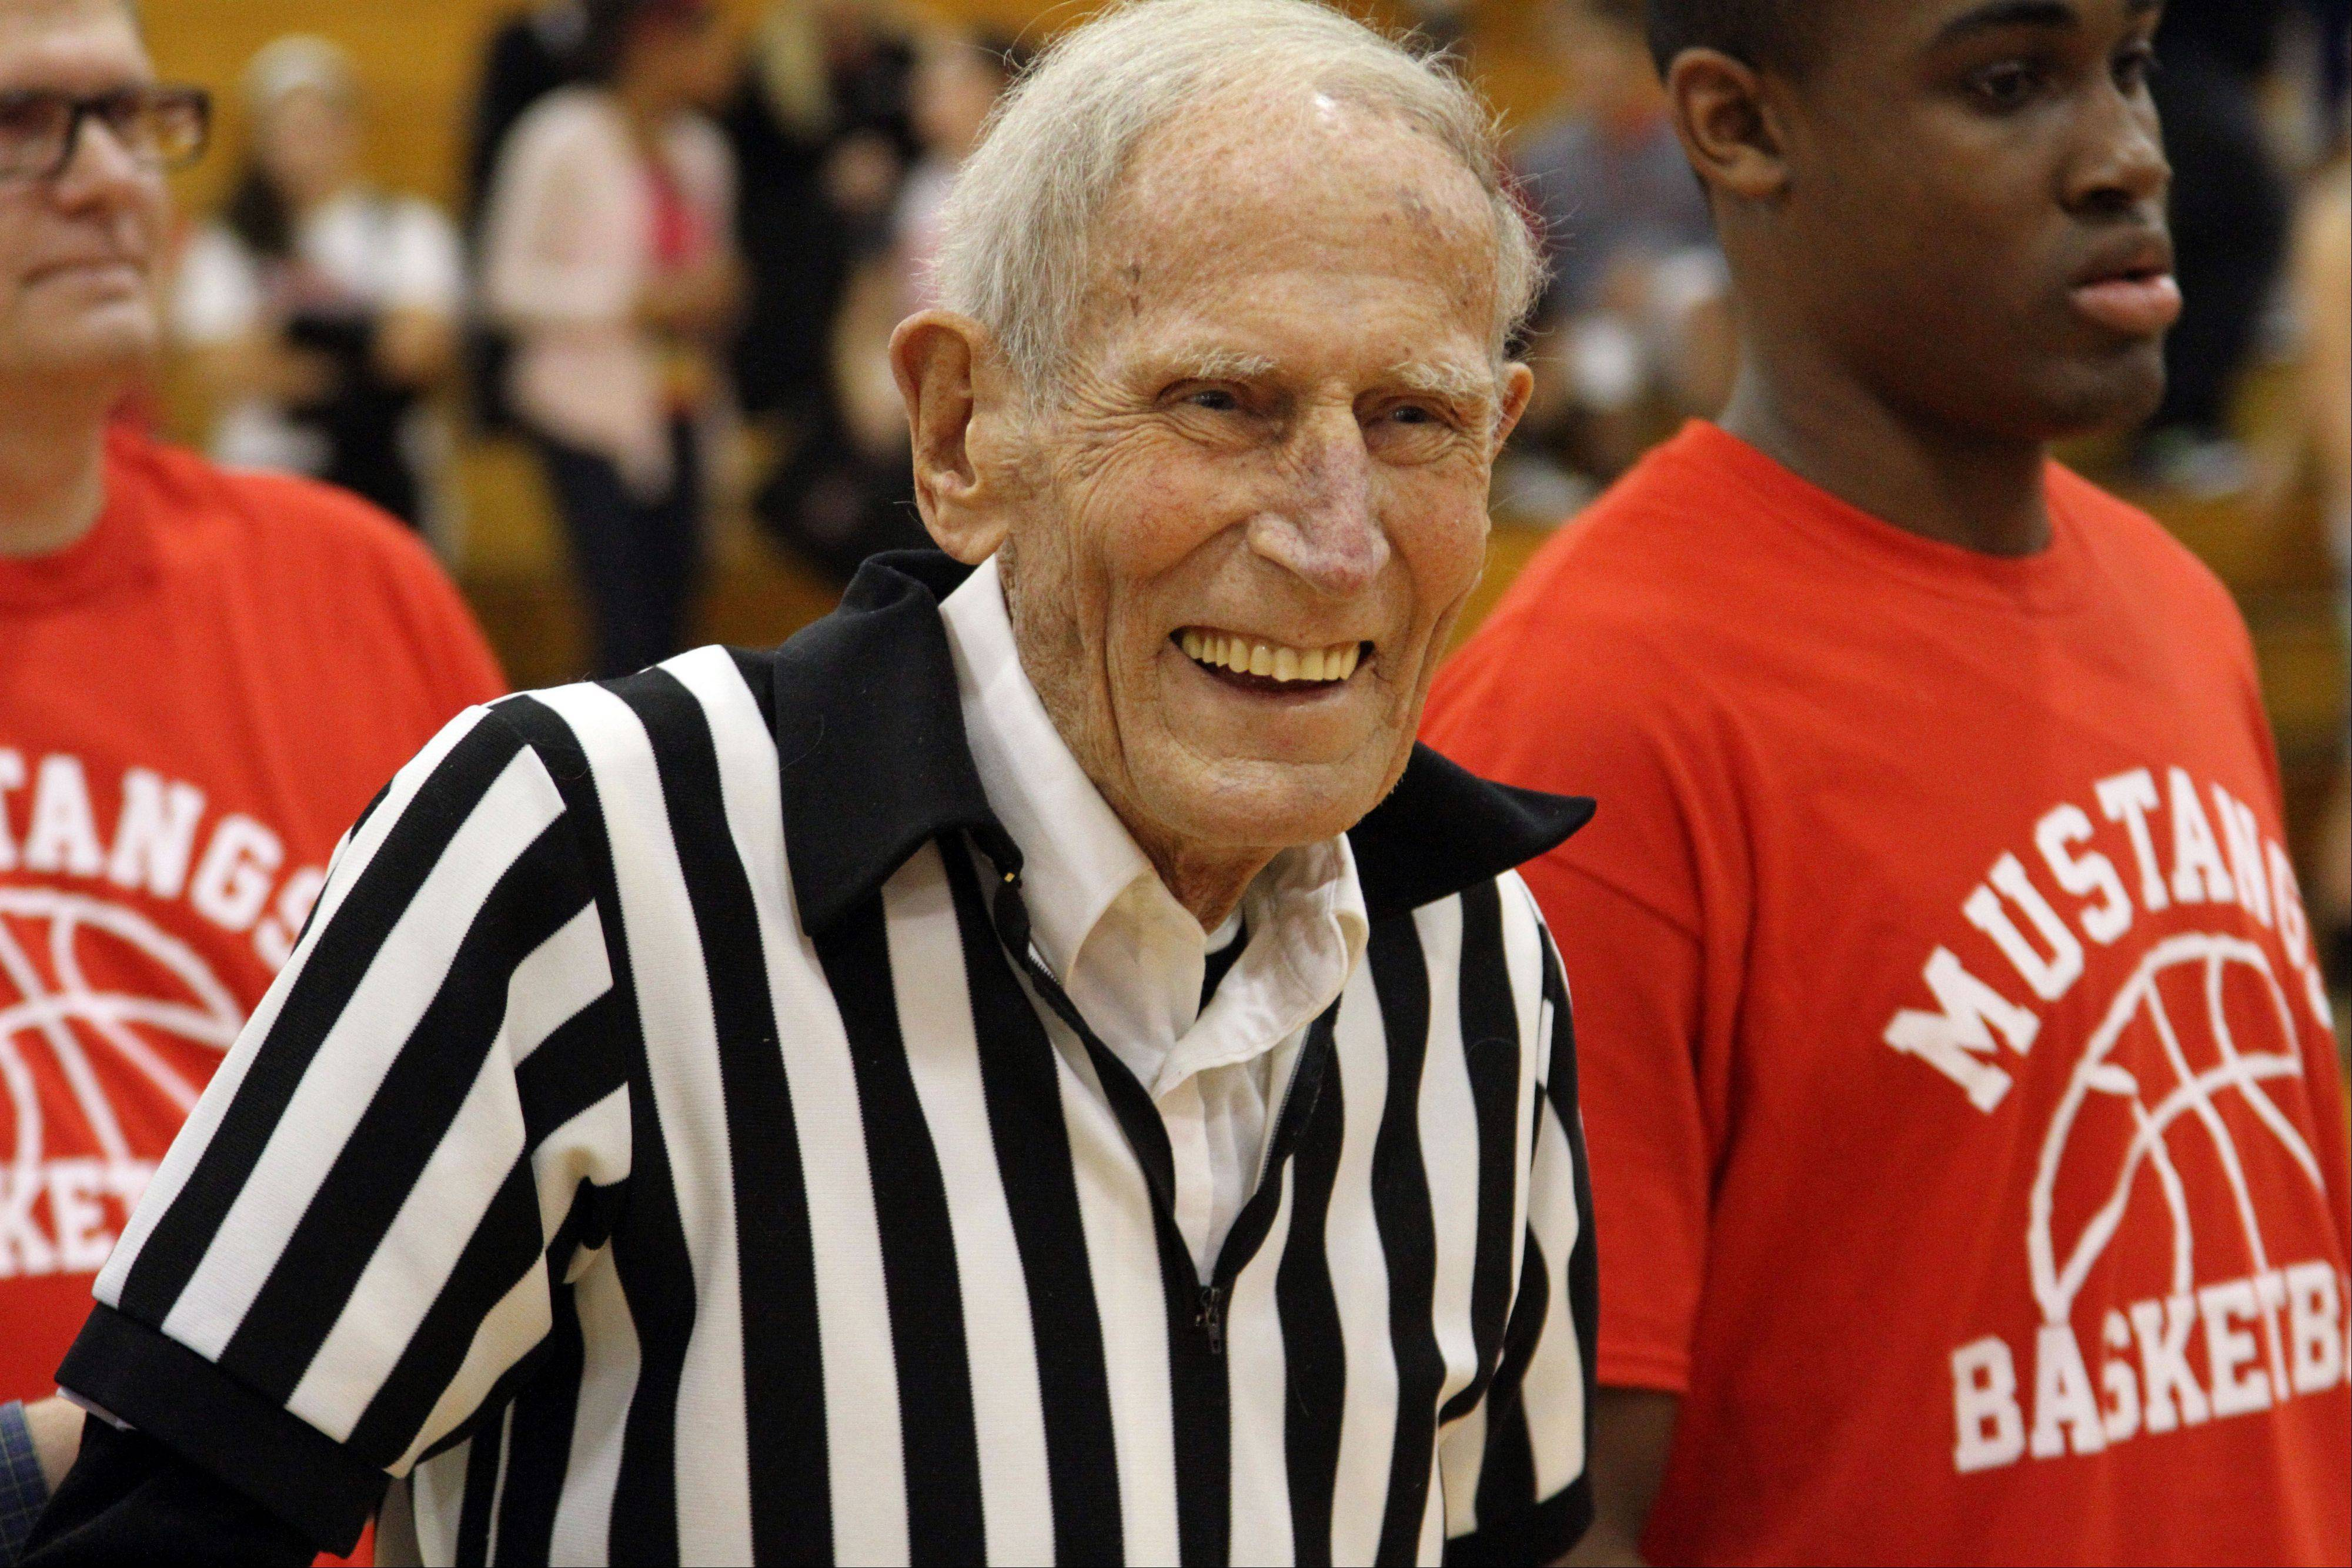 Mundelein basketball scorekeeper Jim Ackley is all smiles after being honored for 50 years of service before Tuesday night�s varsity boys basketball game against Lake Zurich.